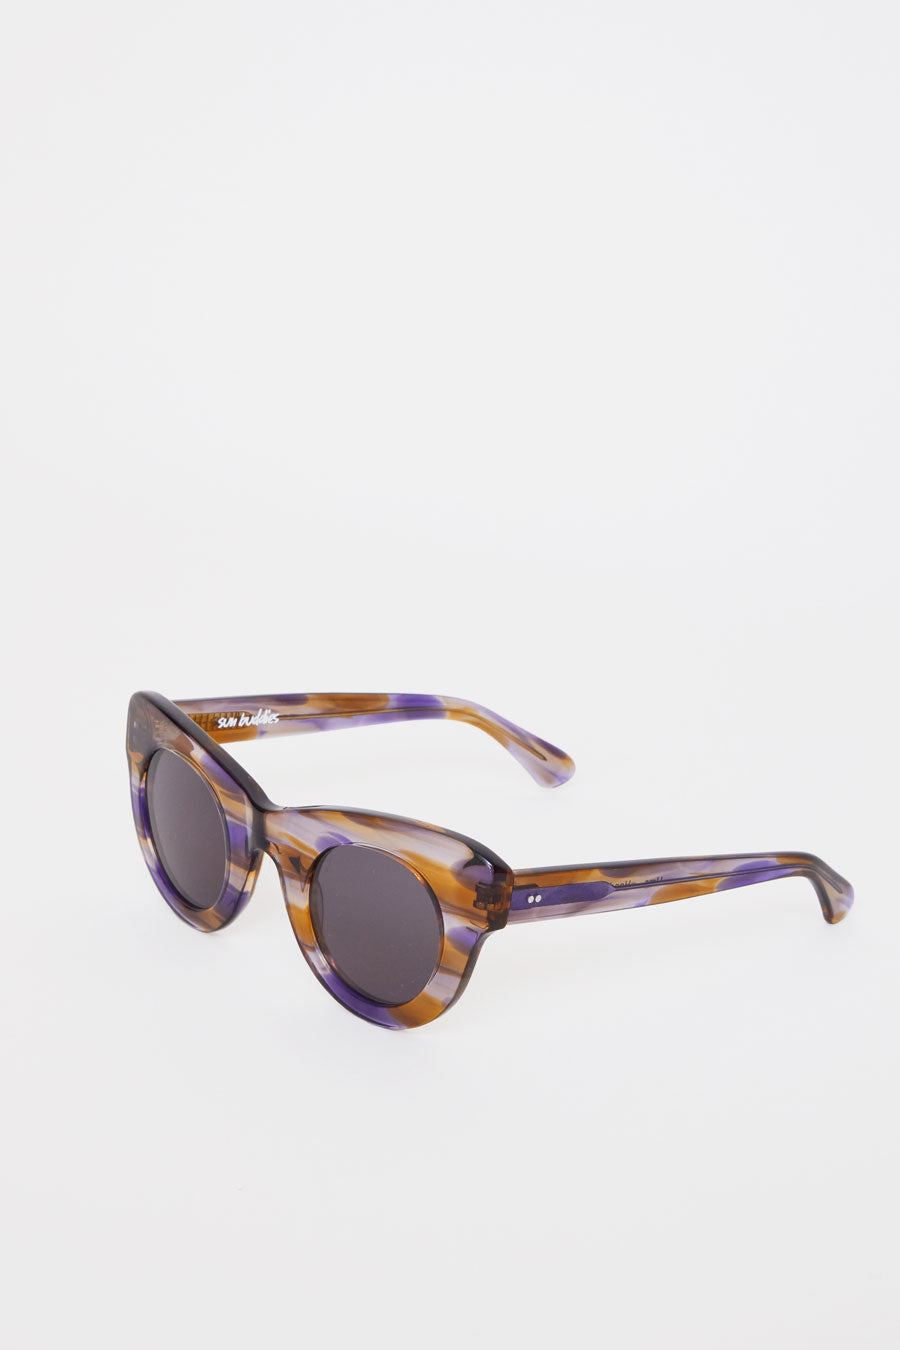 Sun Buddies Uma Sunglasses in Lava Lamp